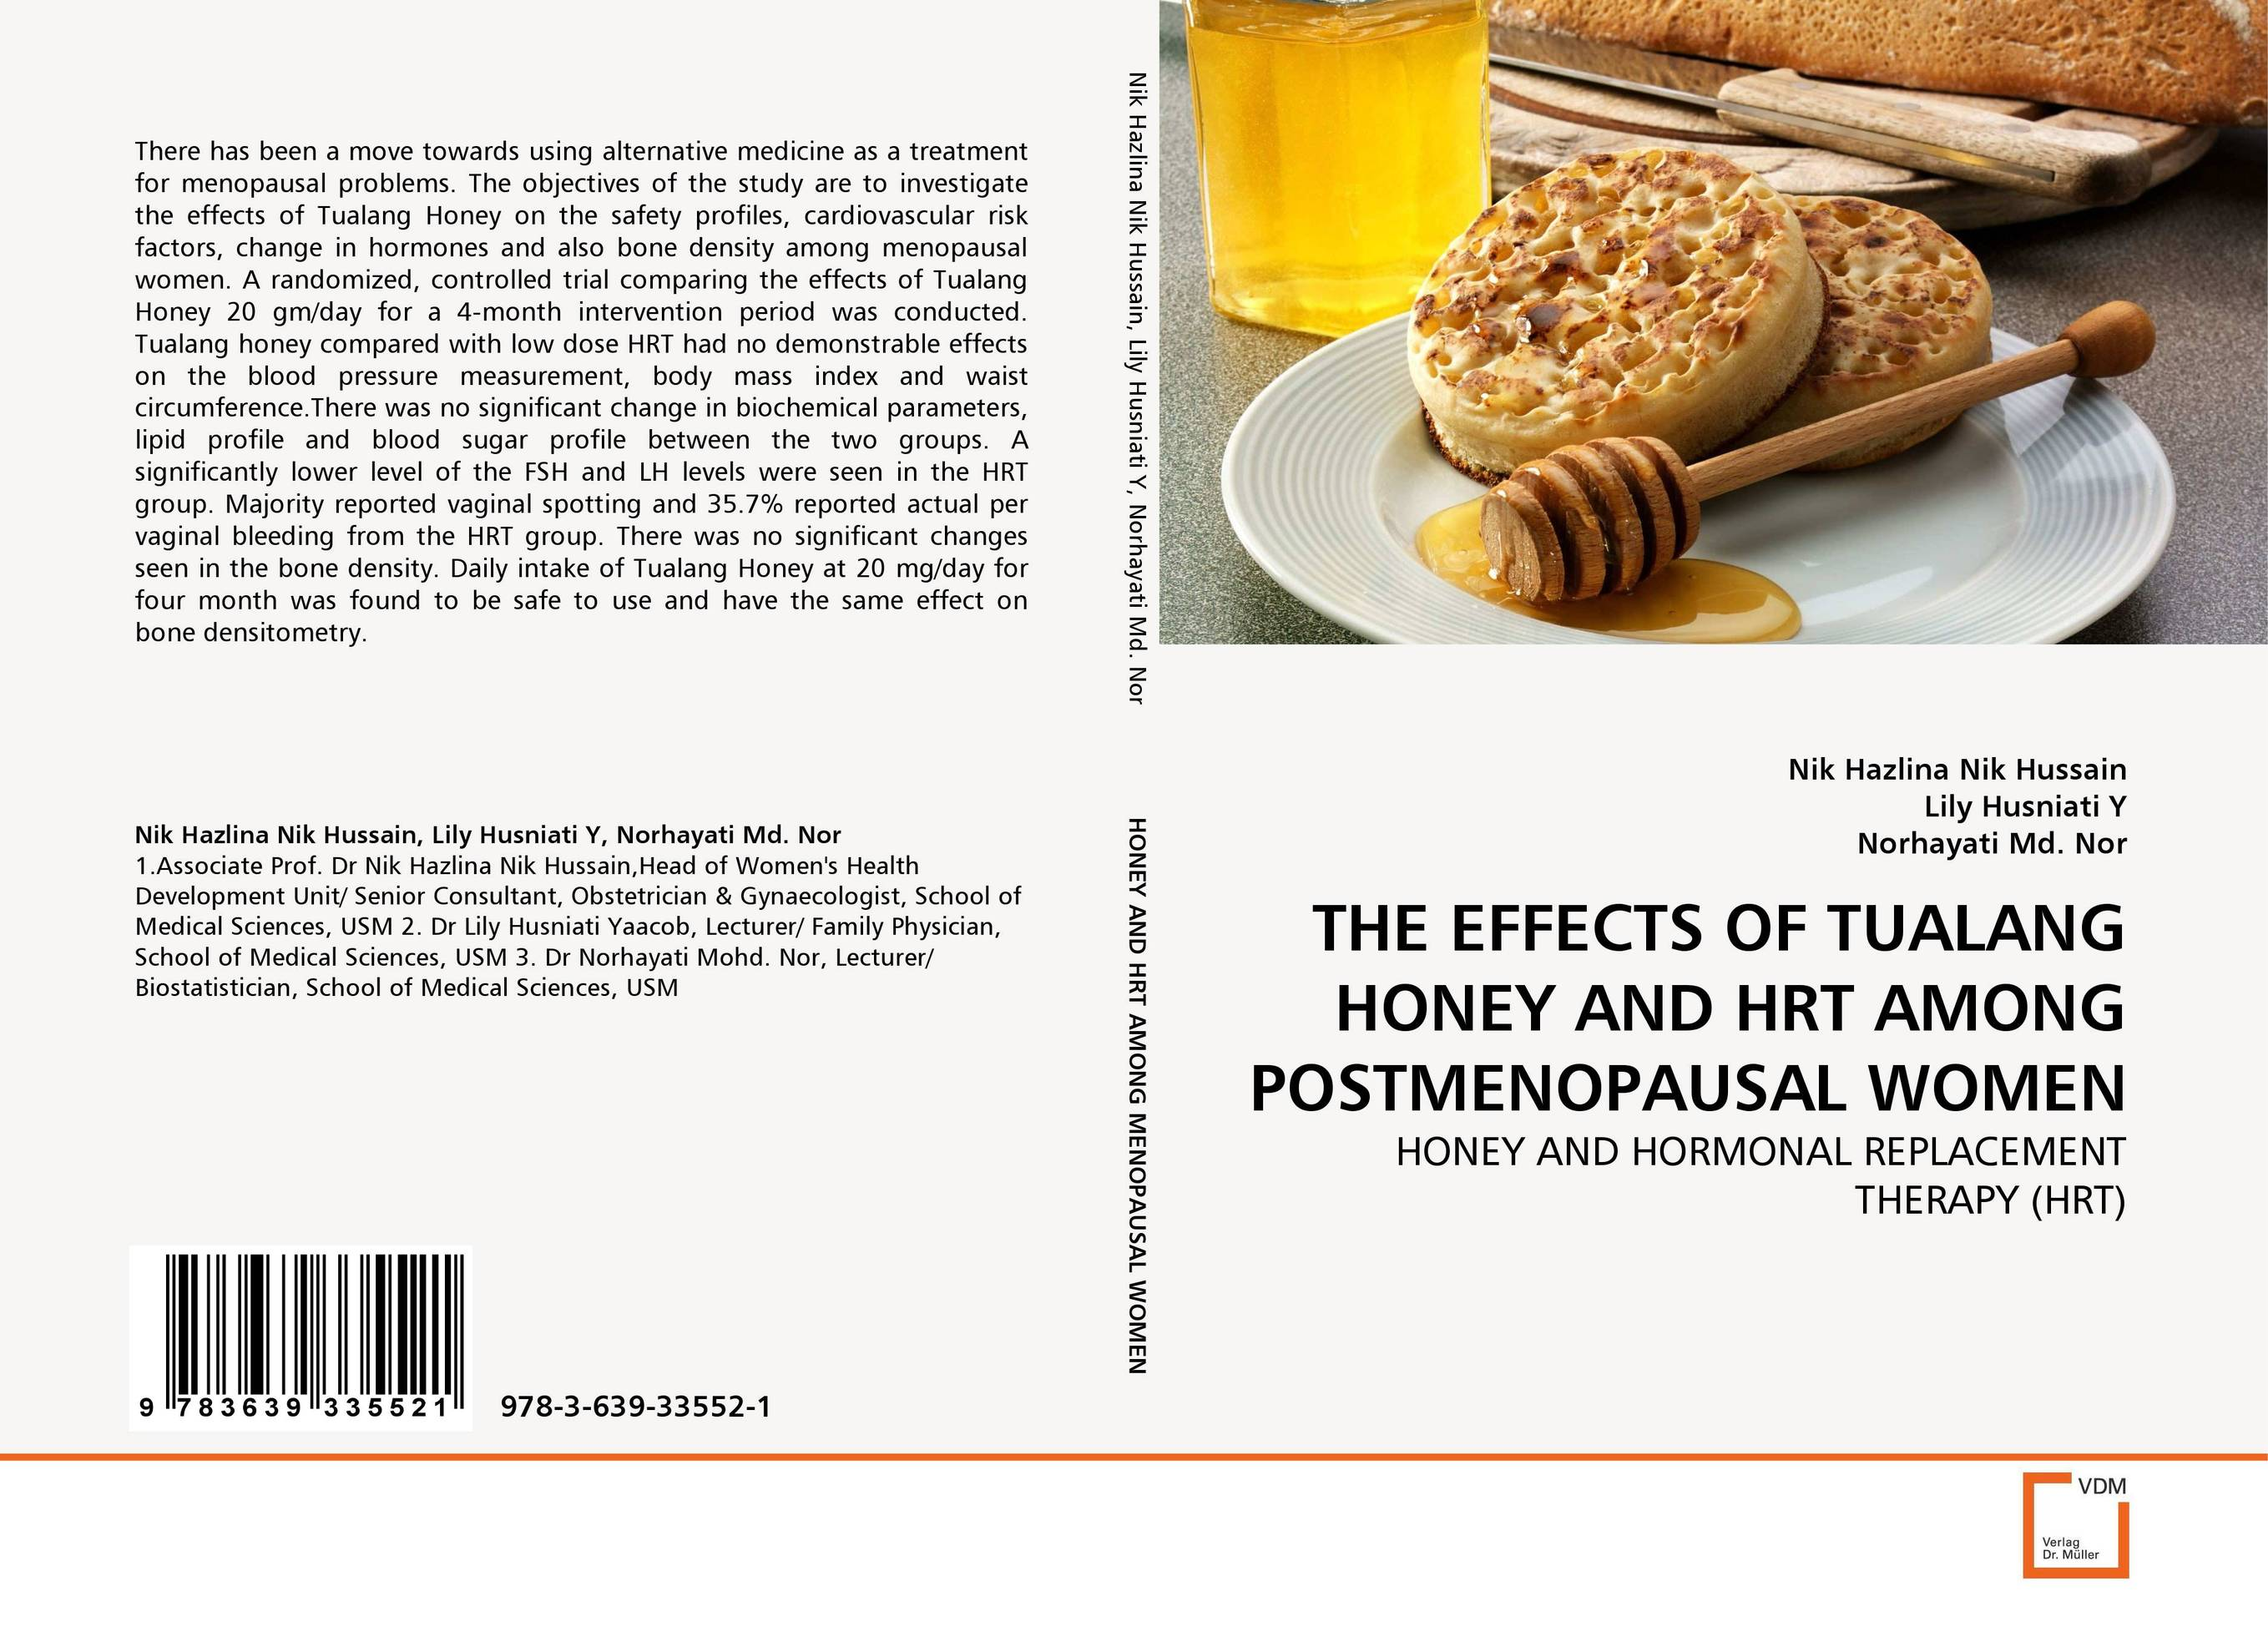 THE EFFECTS OF TUALANG HONEY AND HRT AMONG POSTMENOPAUSAL WOMEN no side effects laser light treatment female vaginal tightening adult healthcare product for delay menopause